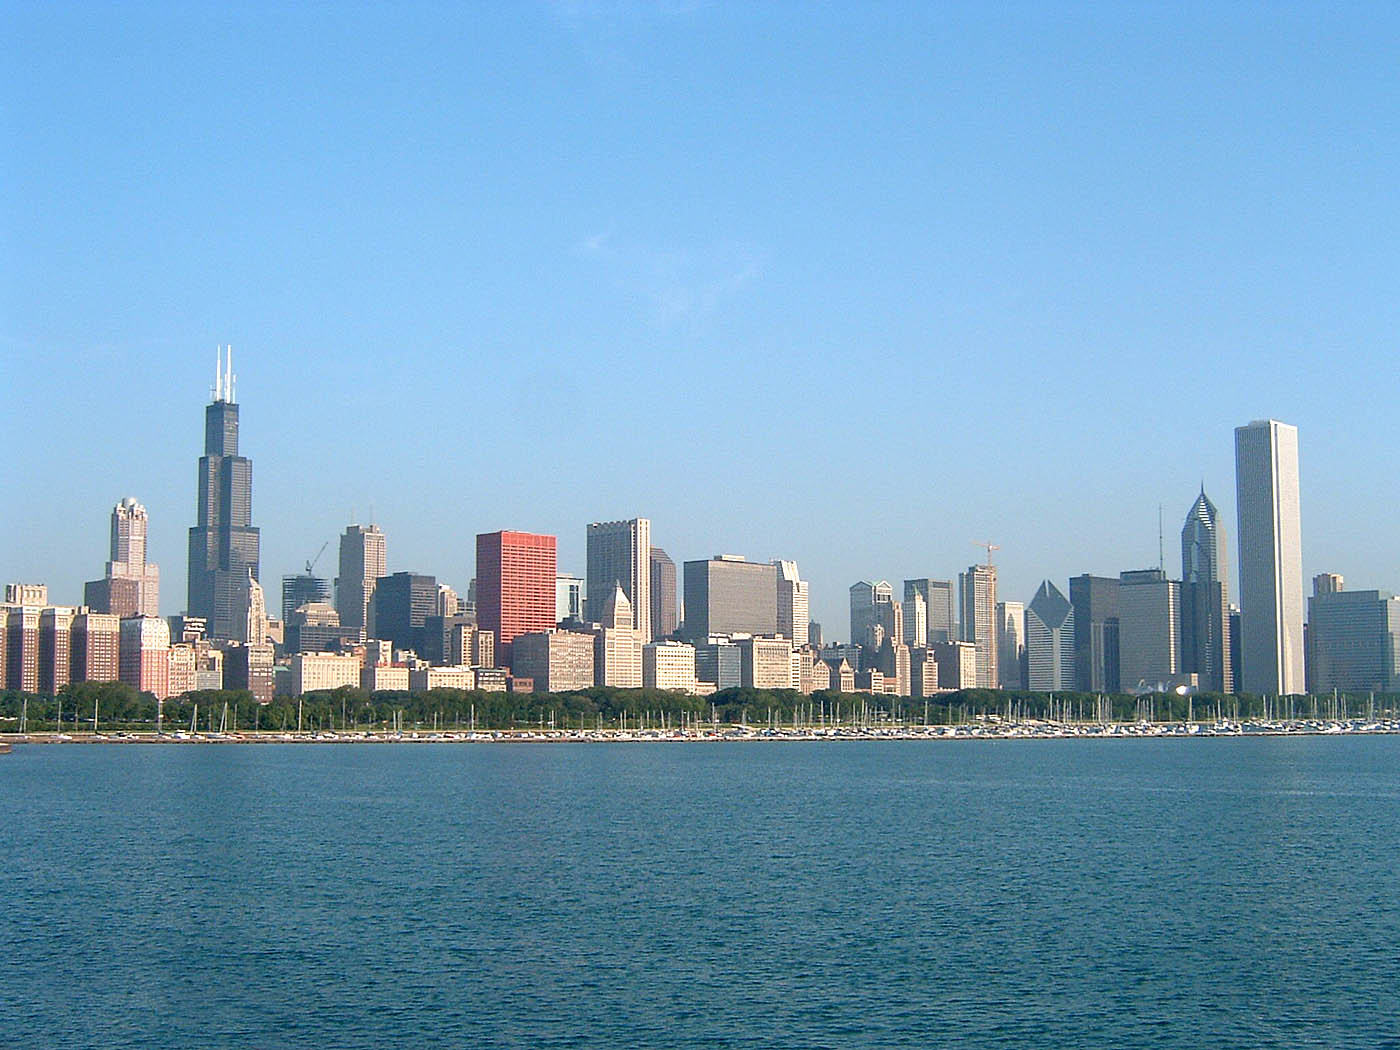 Chicago vacation package deals, Chicago hotel accommodations, Chicago travel deals, Chicago discount travel, Chicago online travel booking